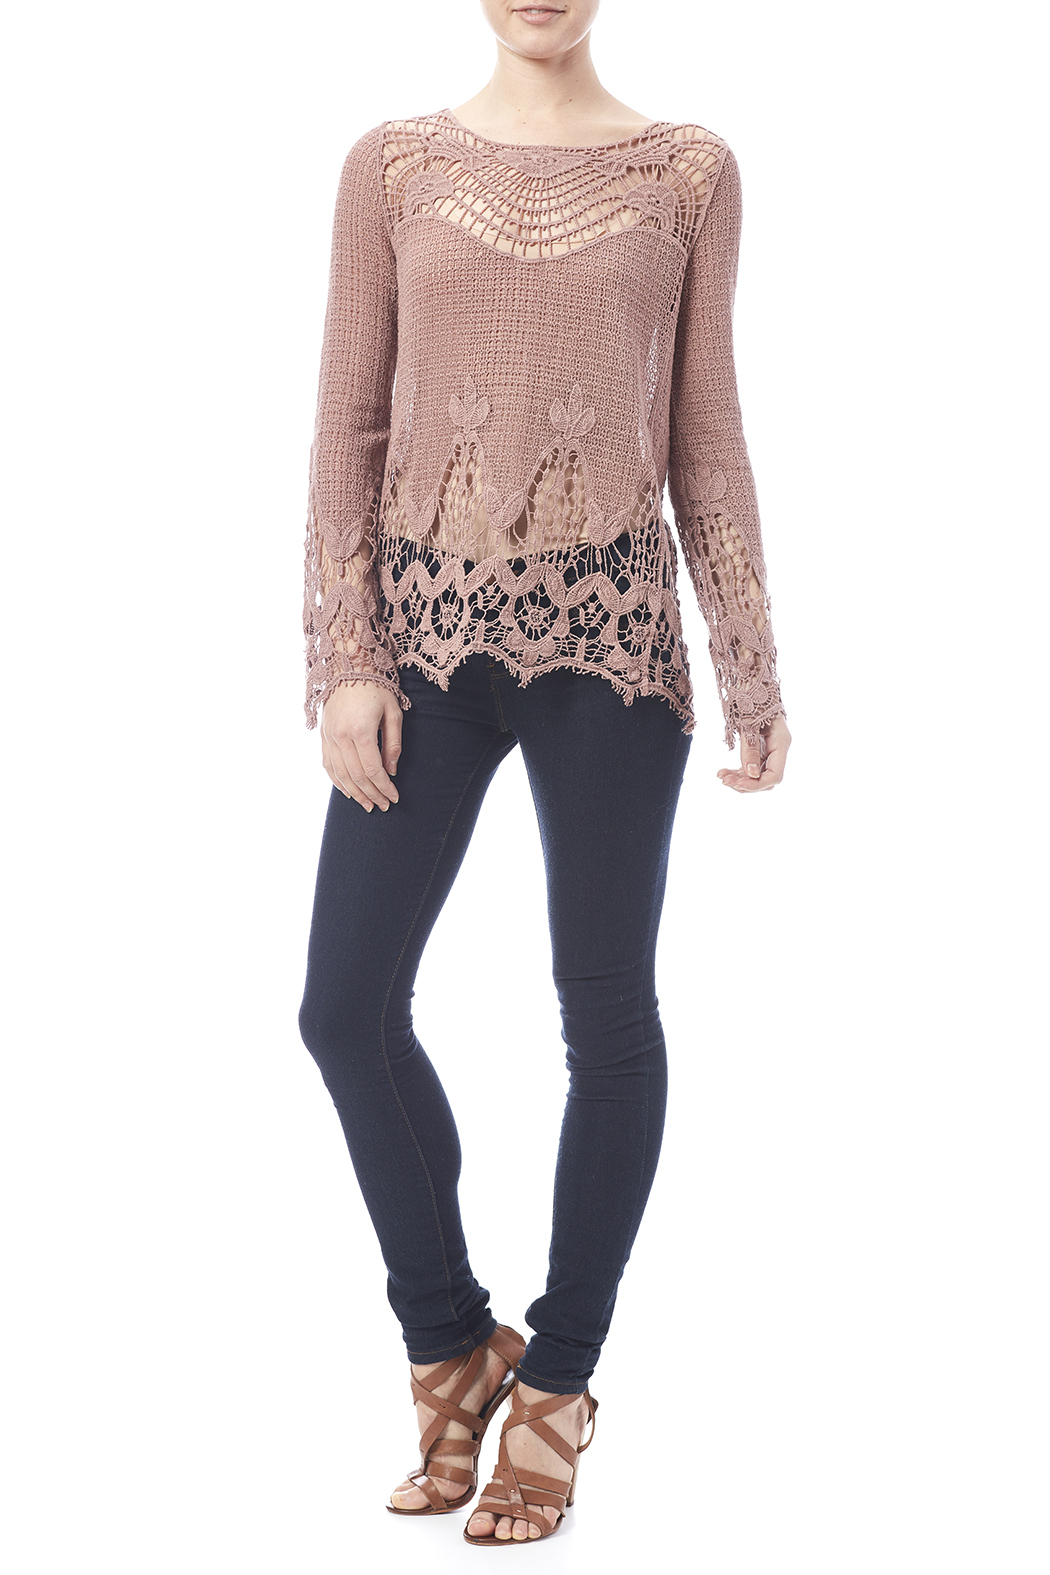 Oddi Mauve Crochet Top - Side Cropped Image